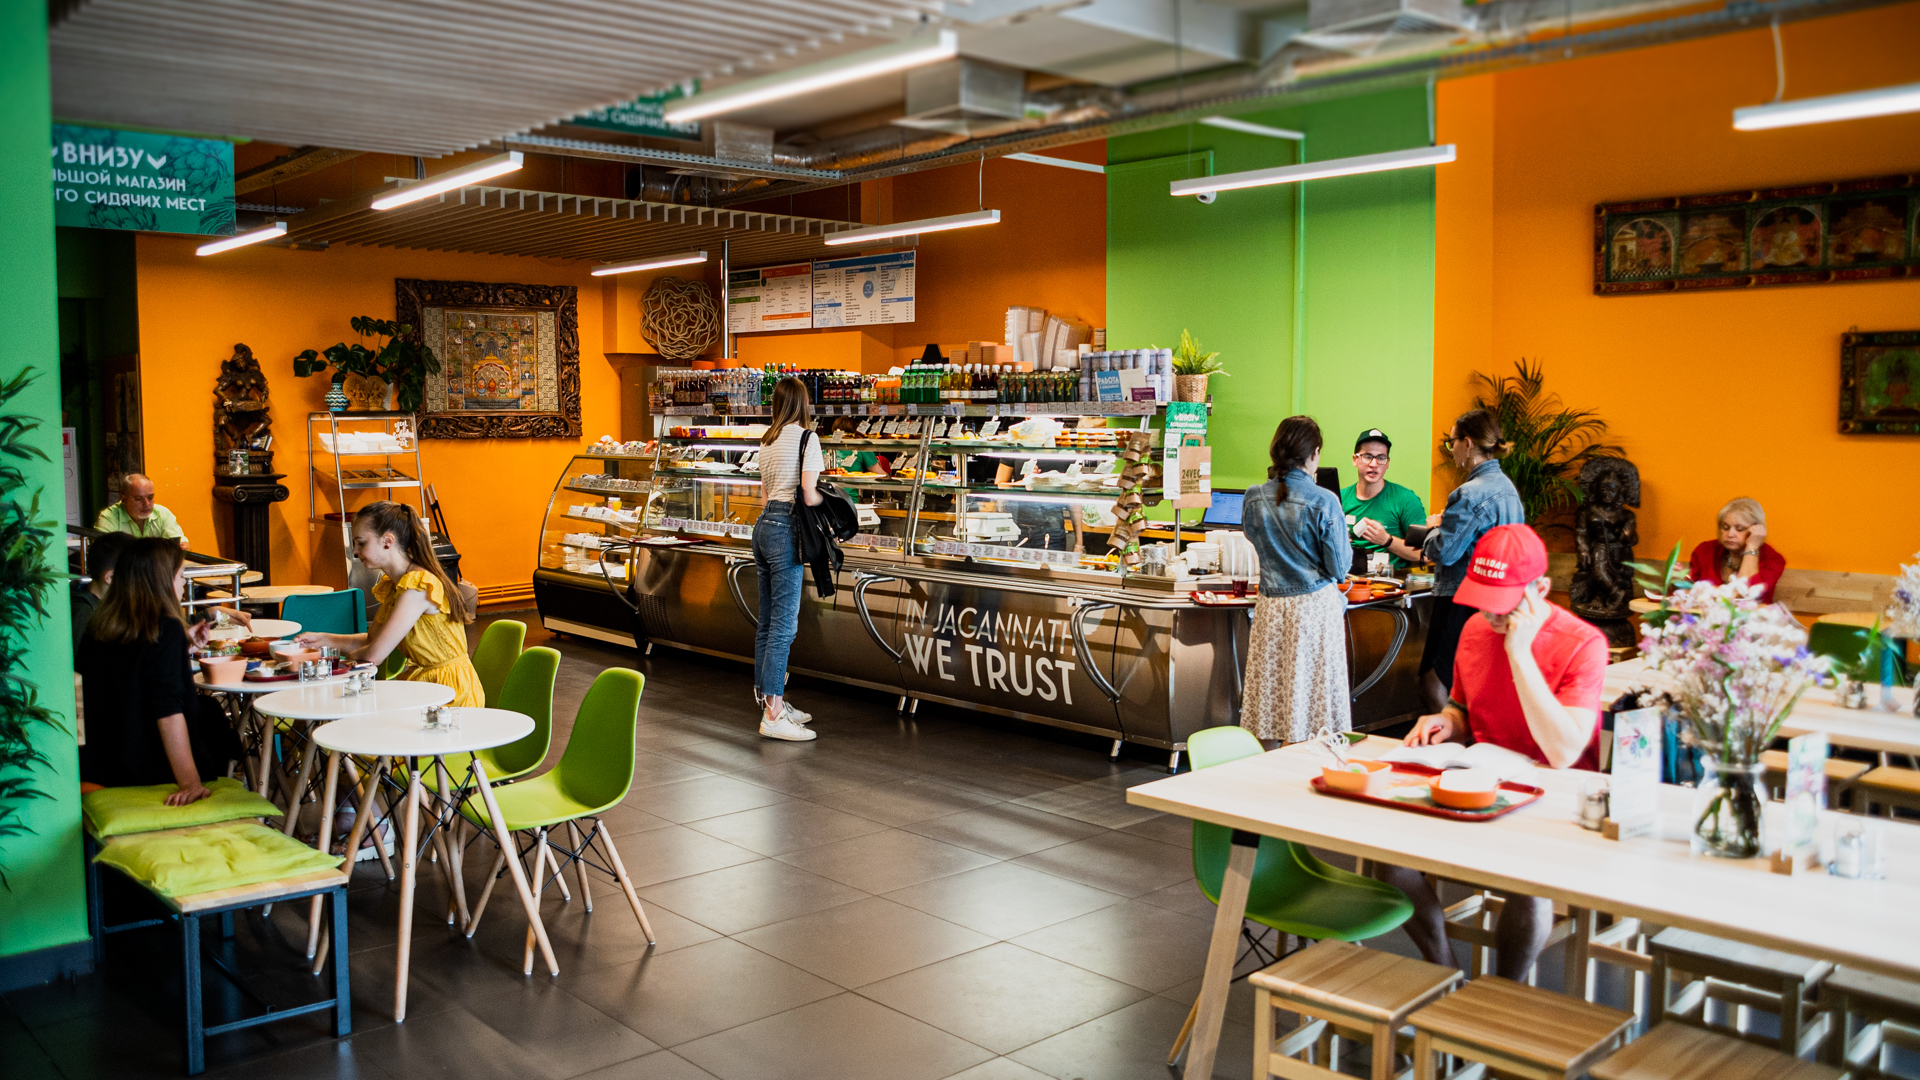 Conscious Consumption Inspired by a Vegetarian Cafe